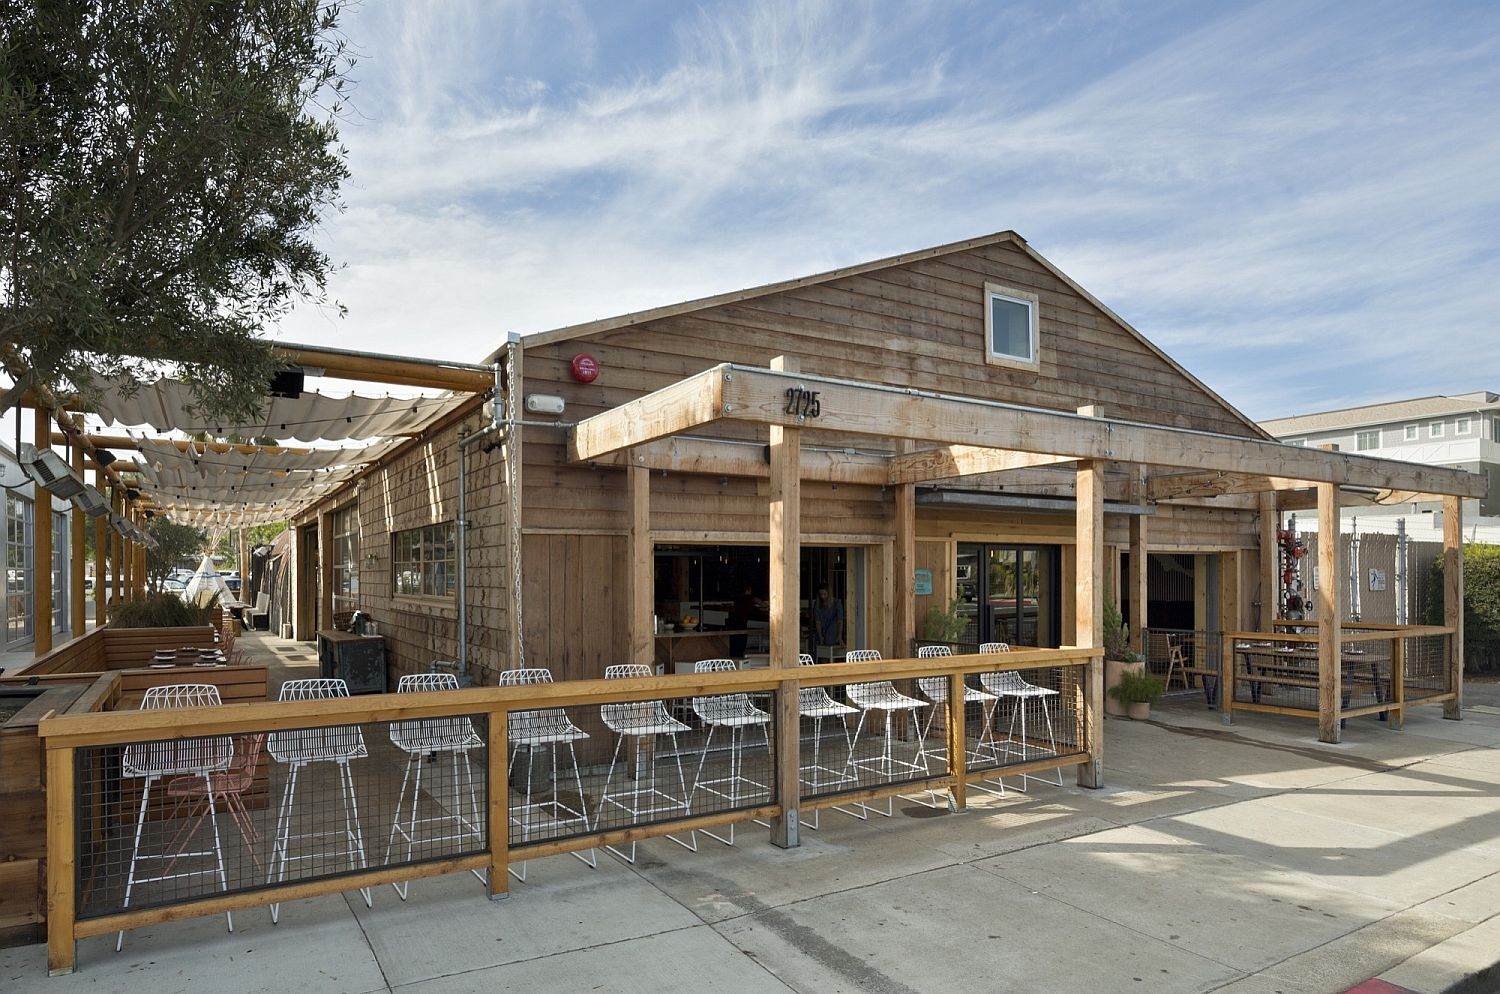 New dining area and cafe at the transformed auto repair shop in California